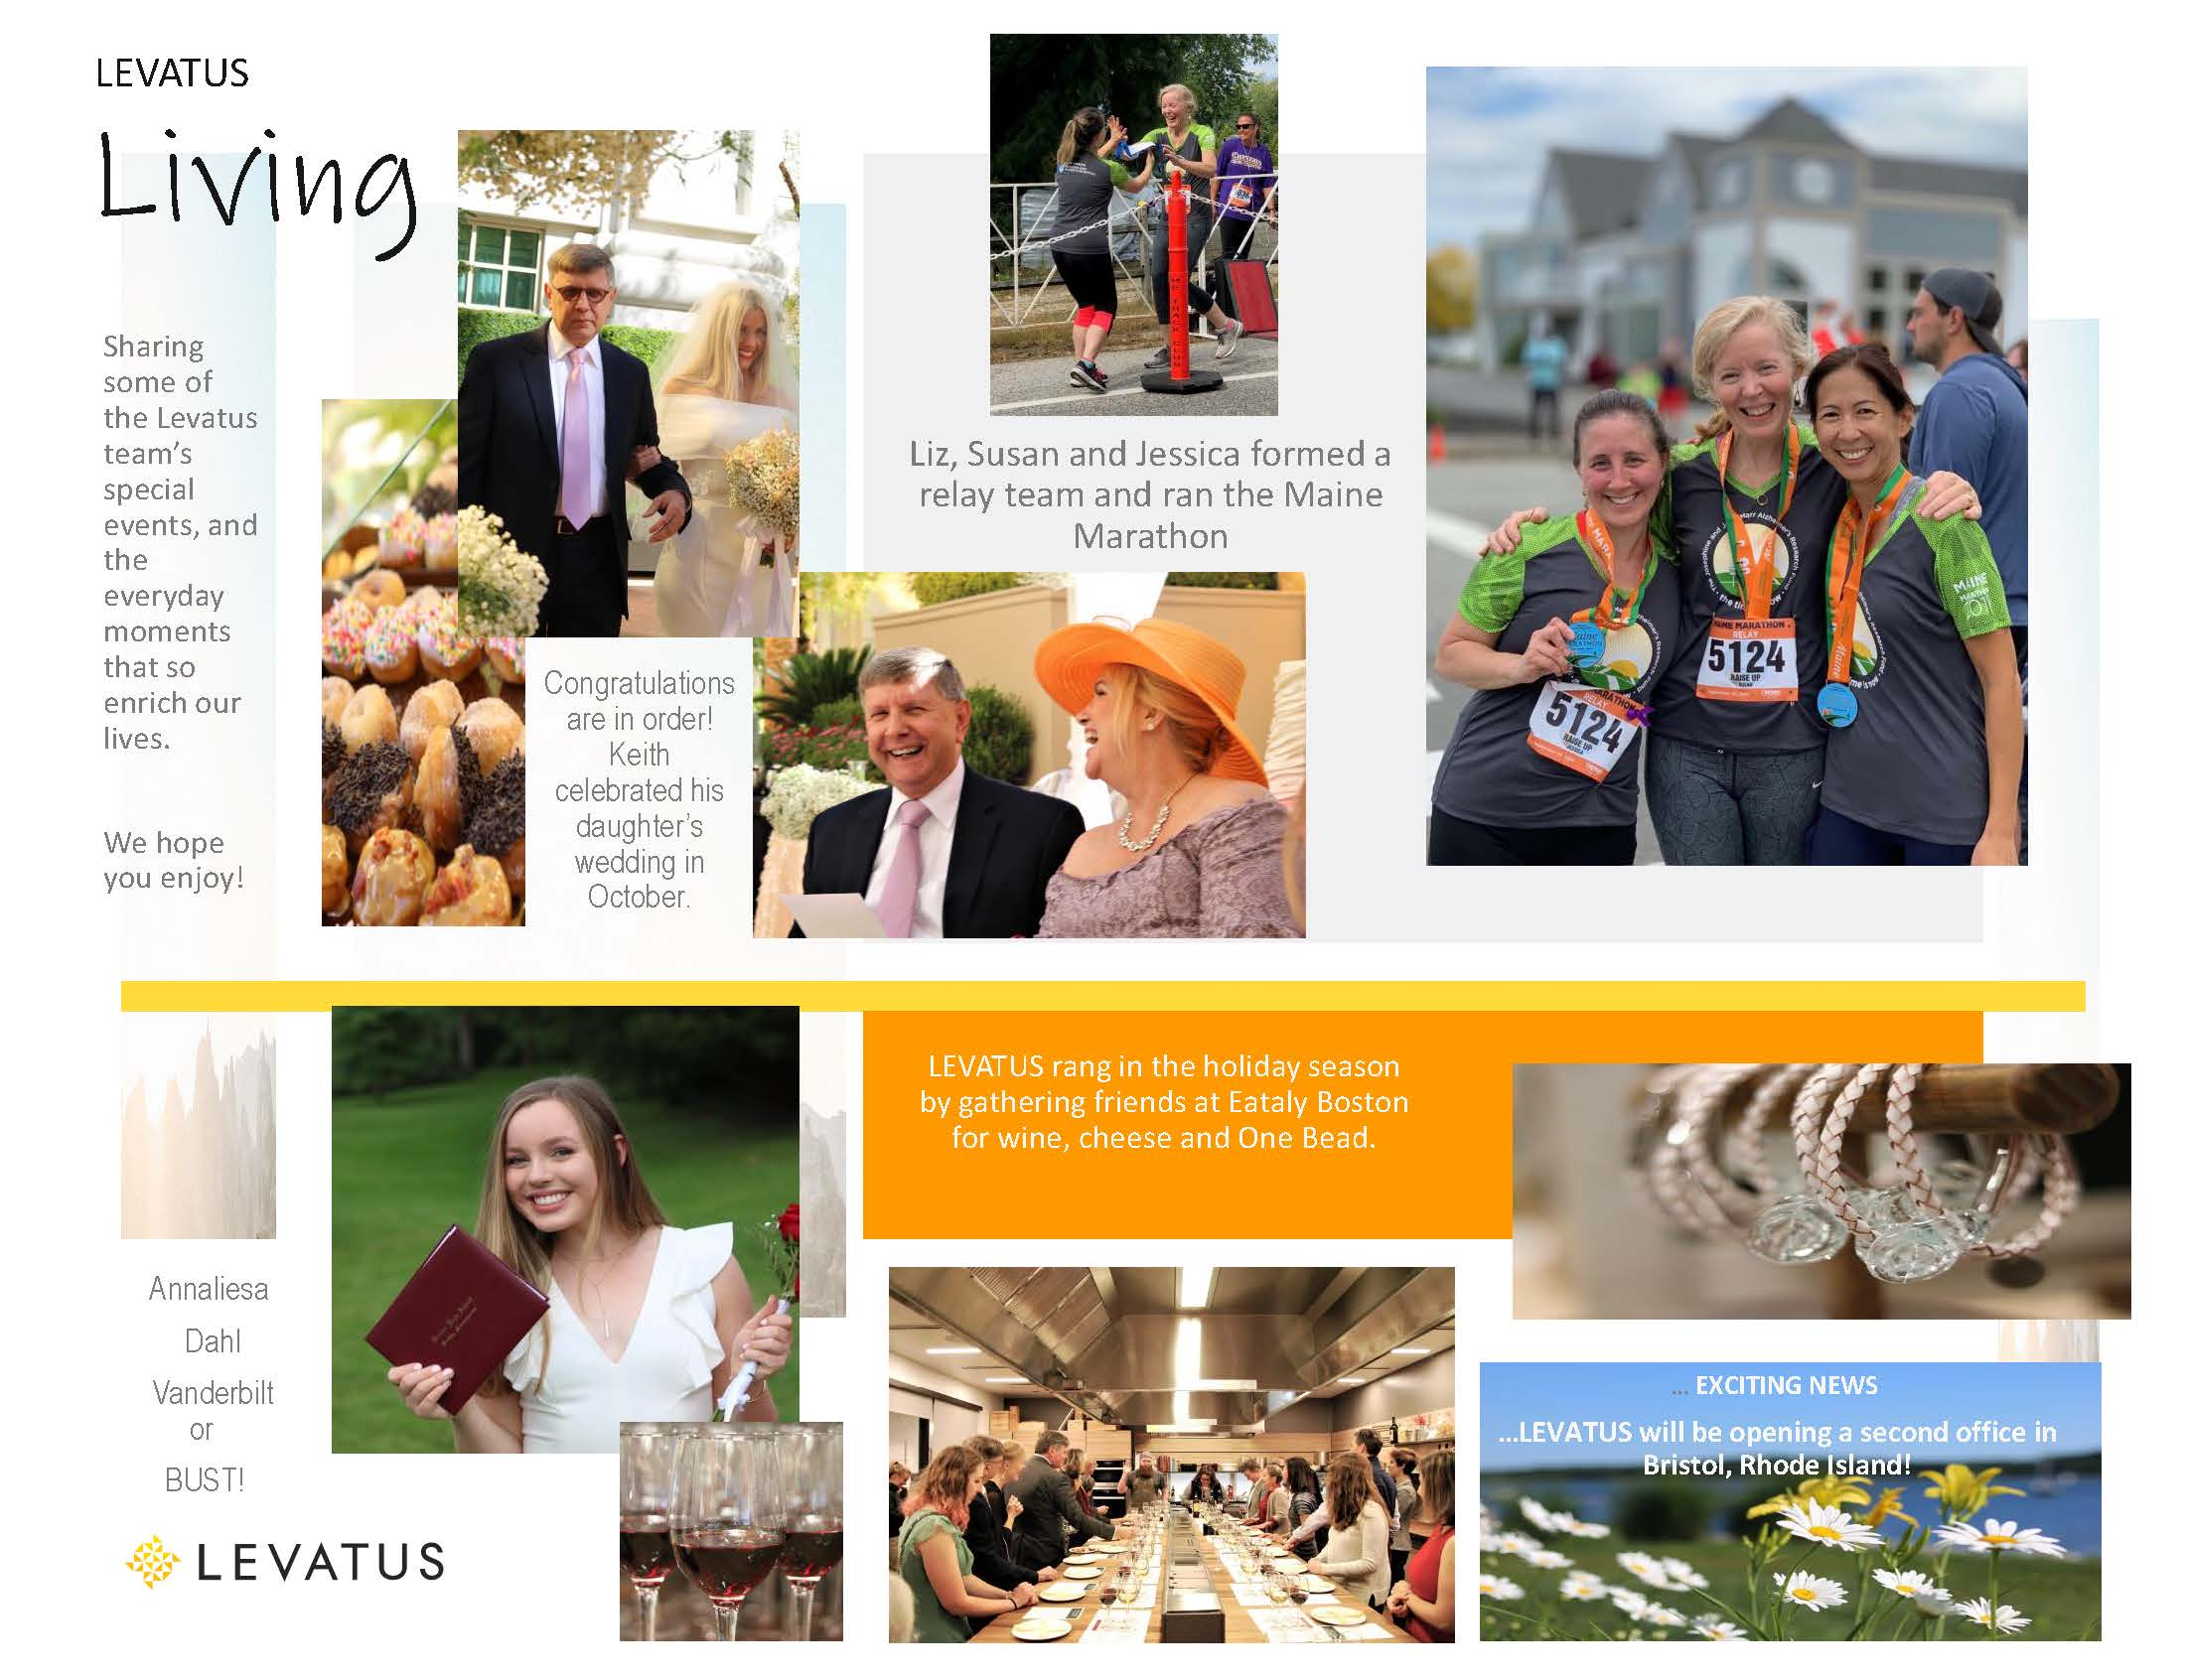 Annual Levatus Living 2019 (002)_Page_1_Page_1.jpg